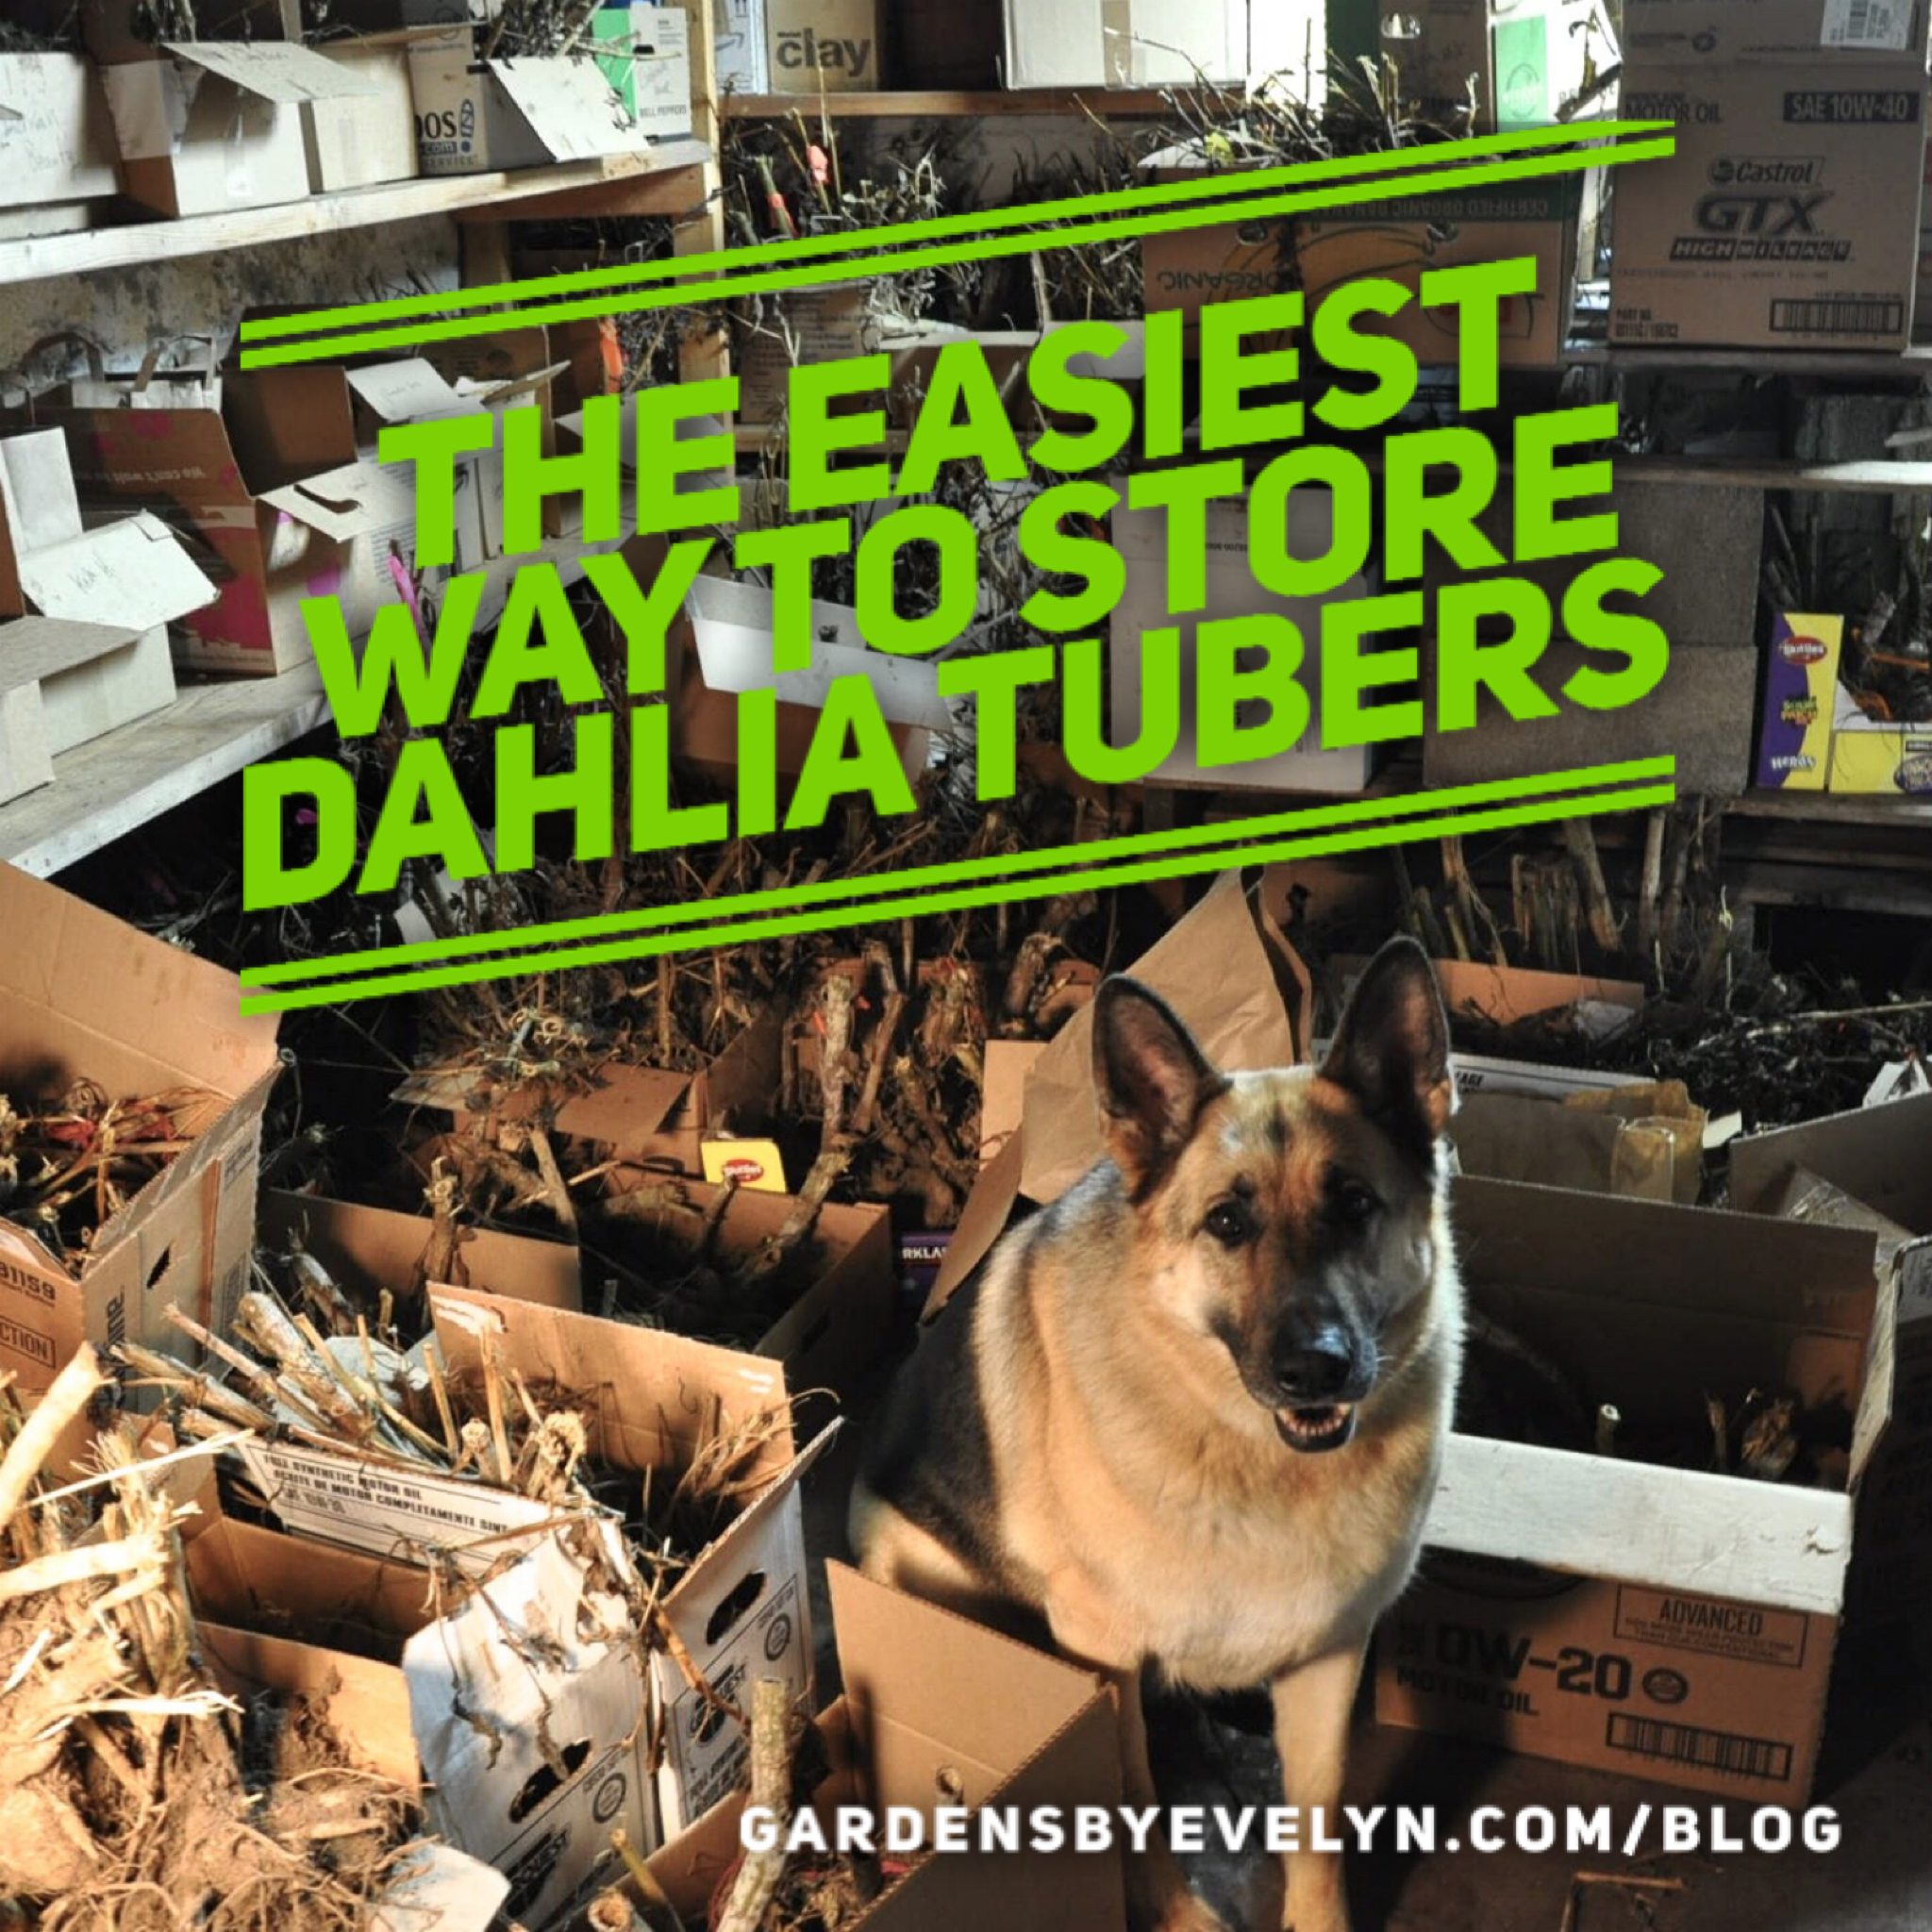 The easiest way to store dahlia tubers